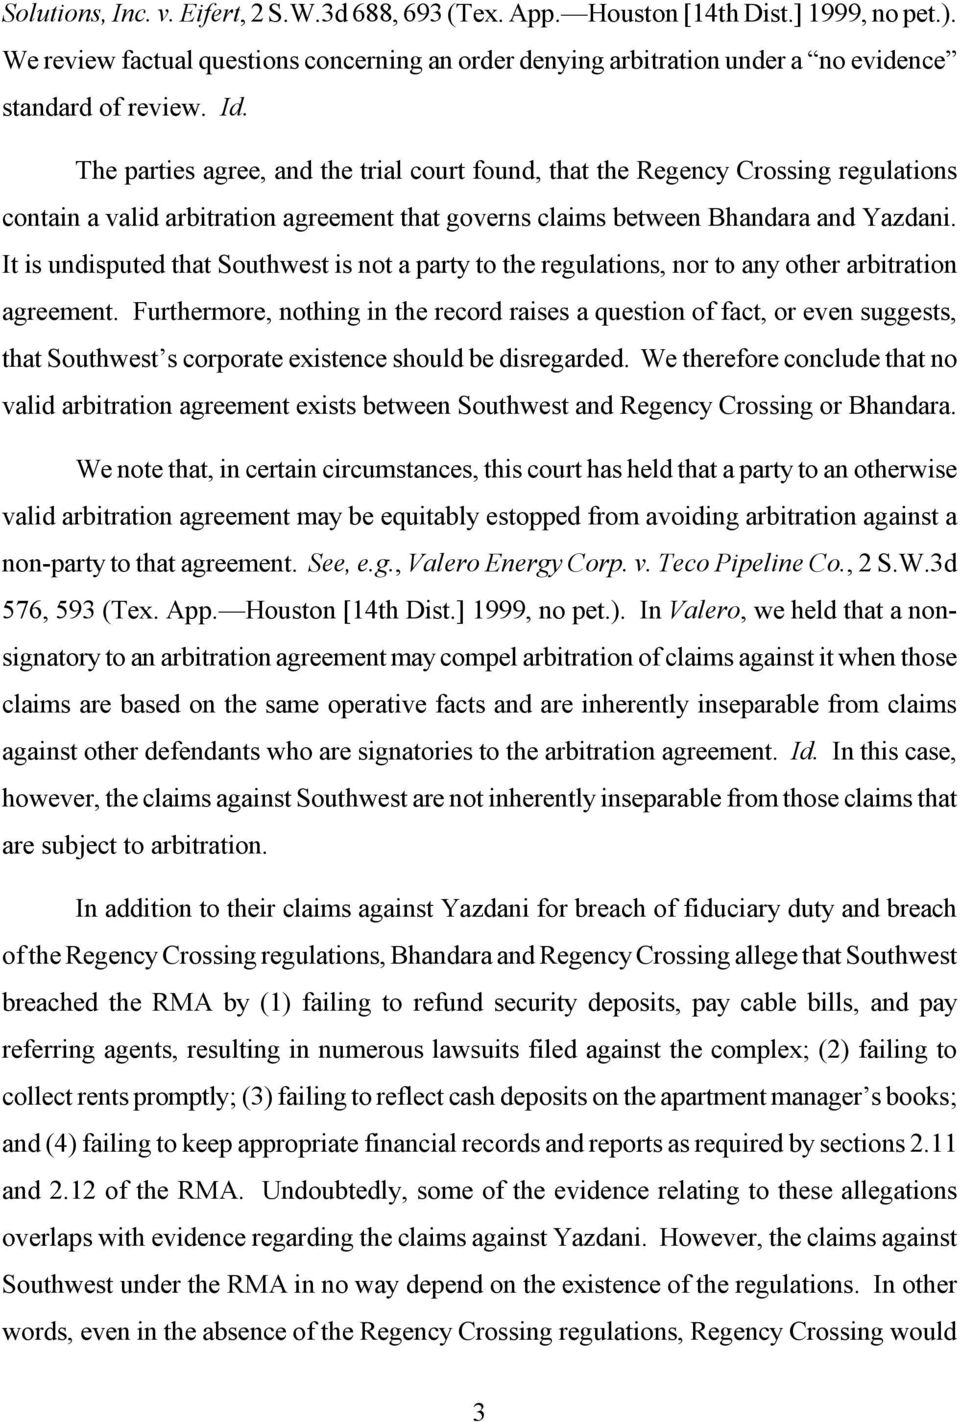 It is undisputed that Southwest is not a party to the regulations, nor to any other arbitration agreement.